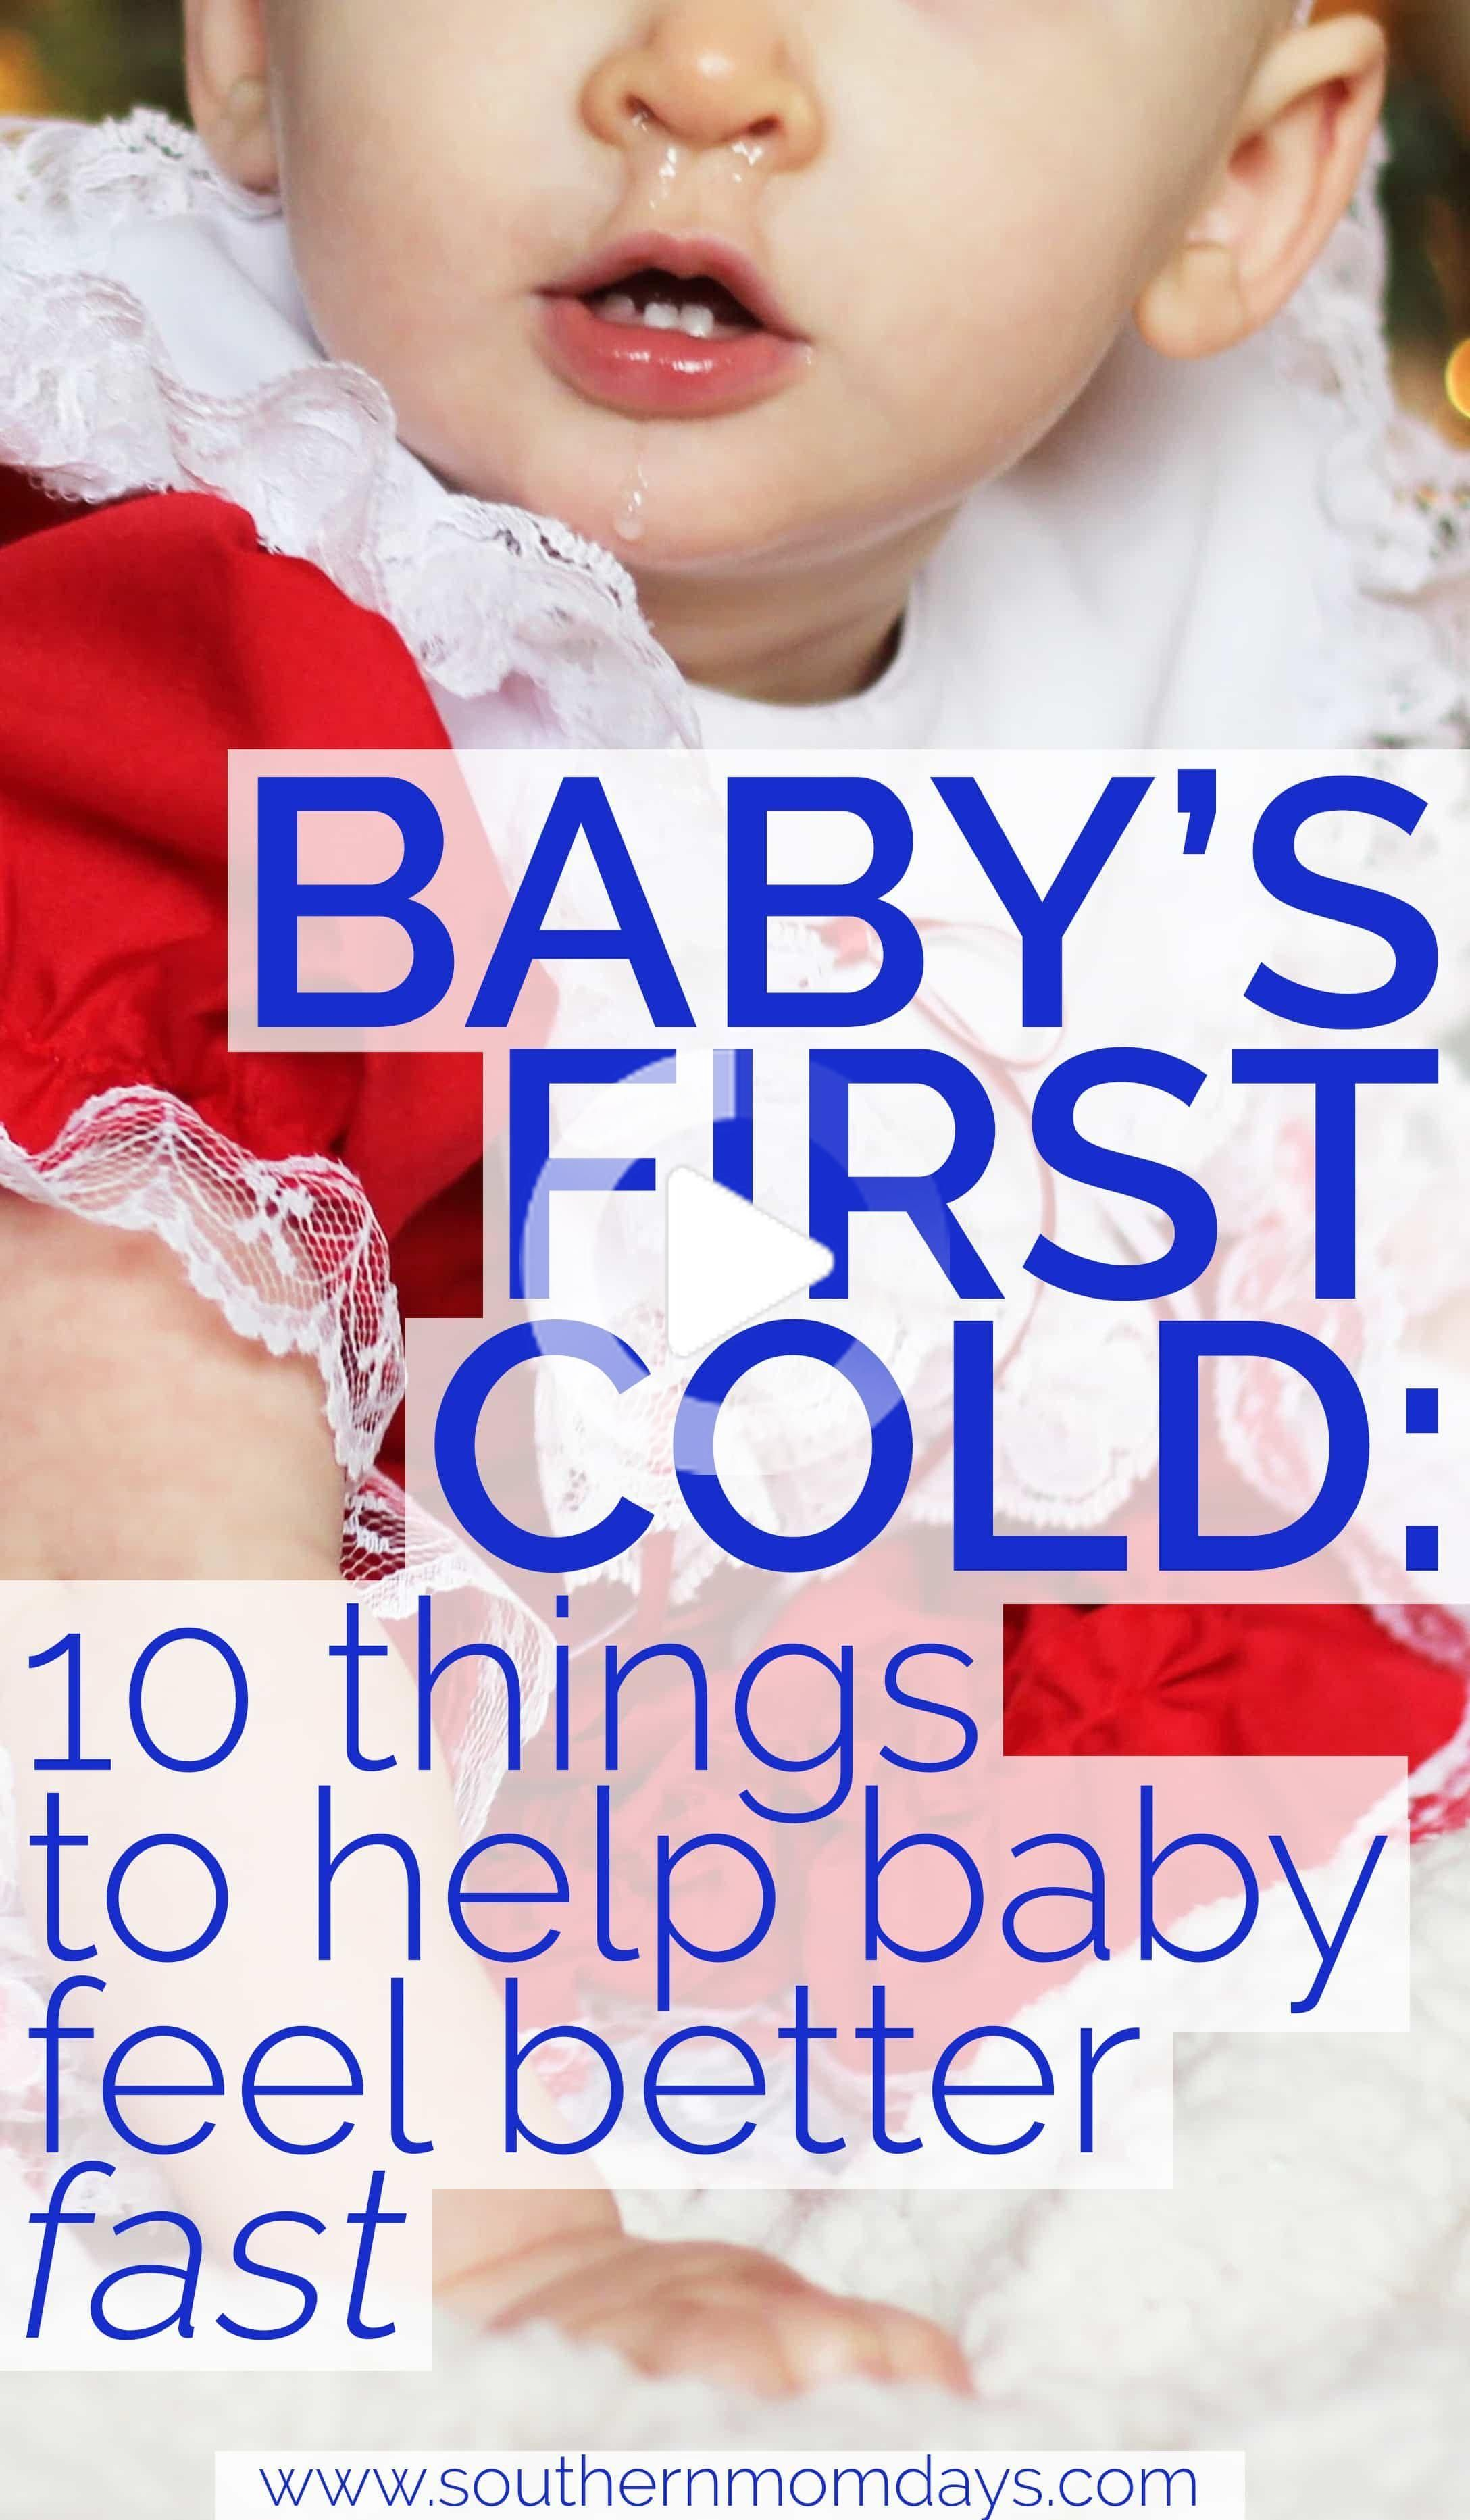 Babys First Cold Kit How To Help Baby Feel Better Fast In 2020 Baby Cold Remedies Baby Fever Remedies Sick Baby Remedies